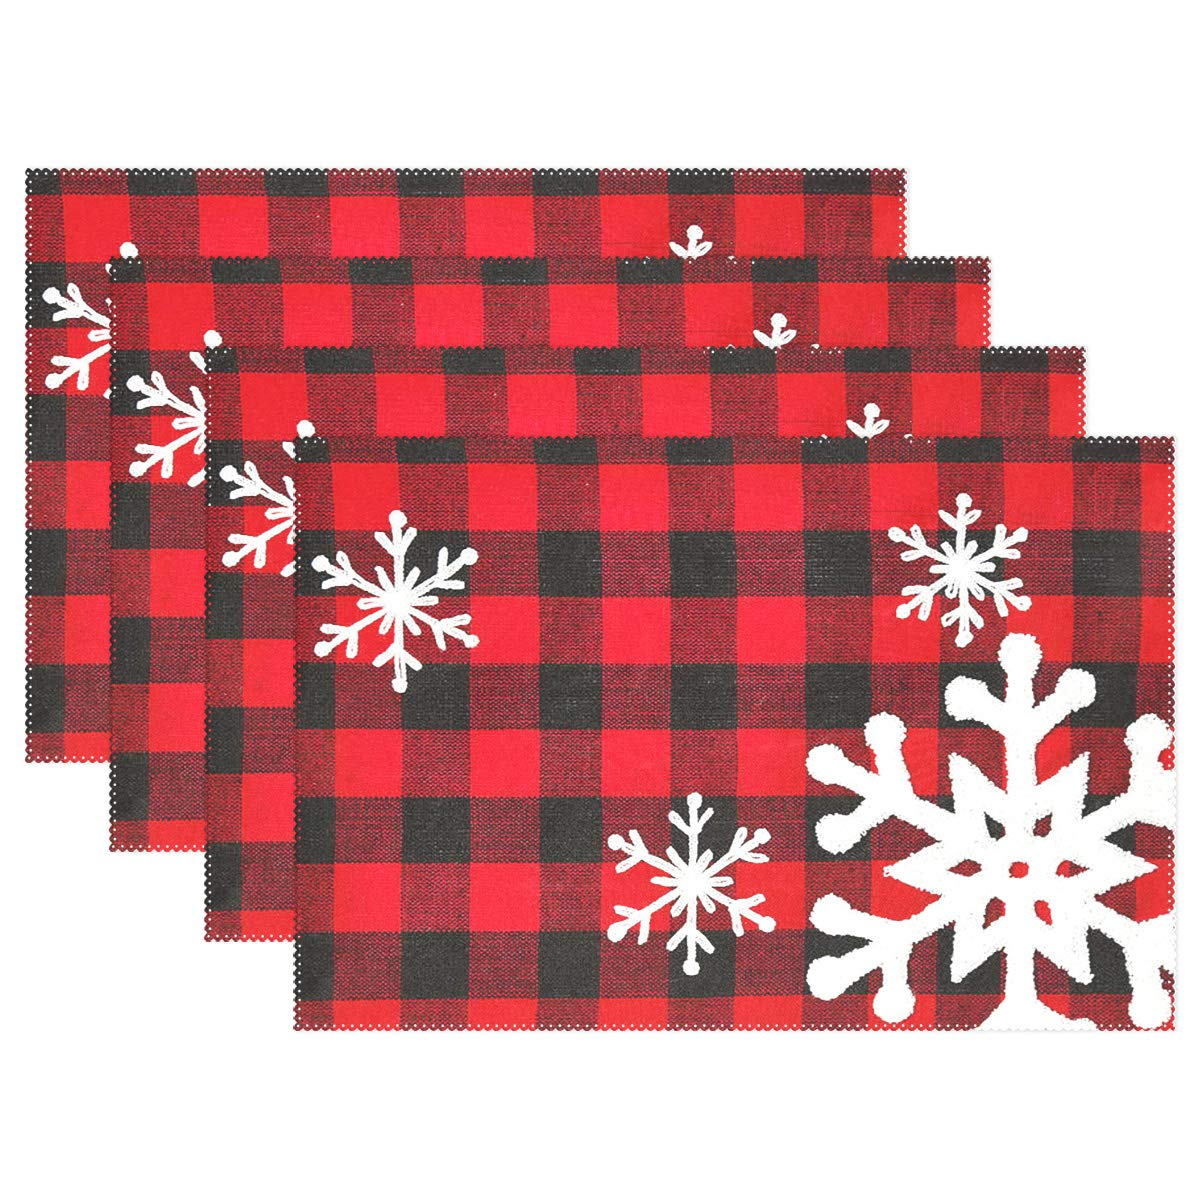 """Christmas Red Plaid Snow Snowflake Placemats Set of 6 Table Mat, Red Black Lattice Texture Table mats Placemats Heat-resistant Stain Resistant Washable for Kitchen Dining Decoration 12"""" x 18"""""""